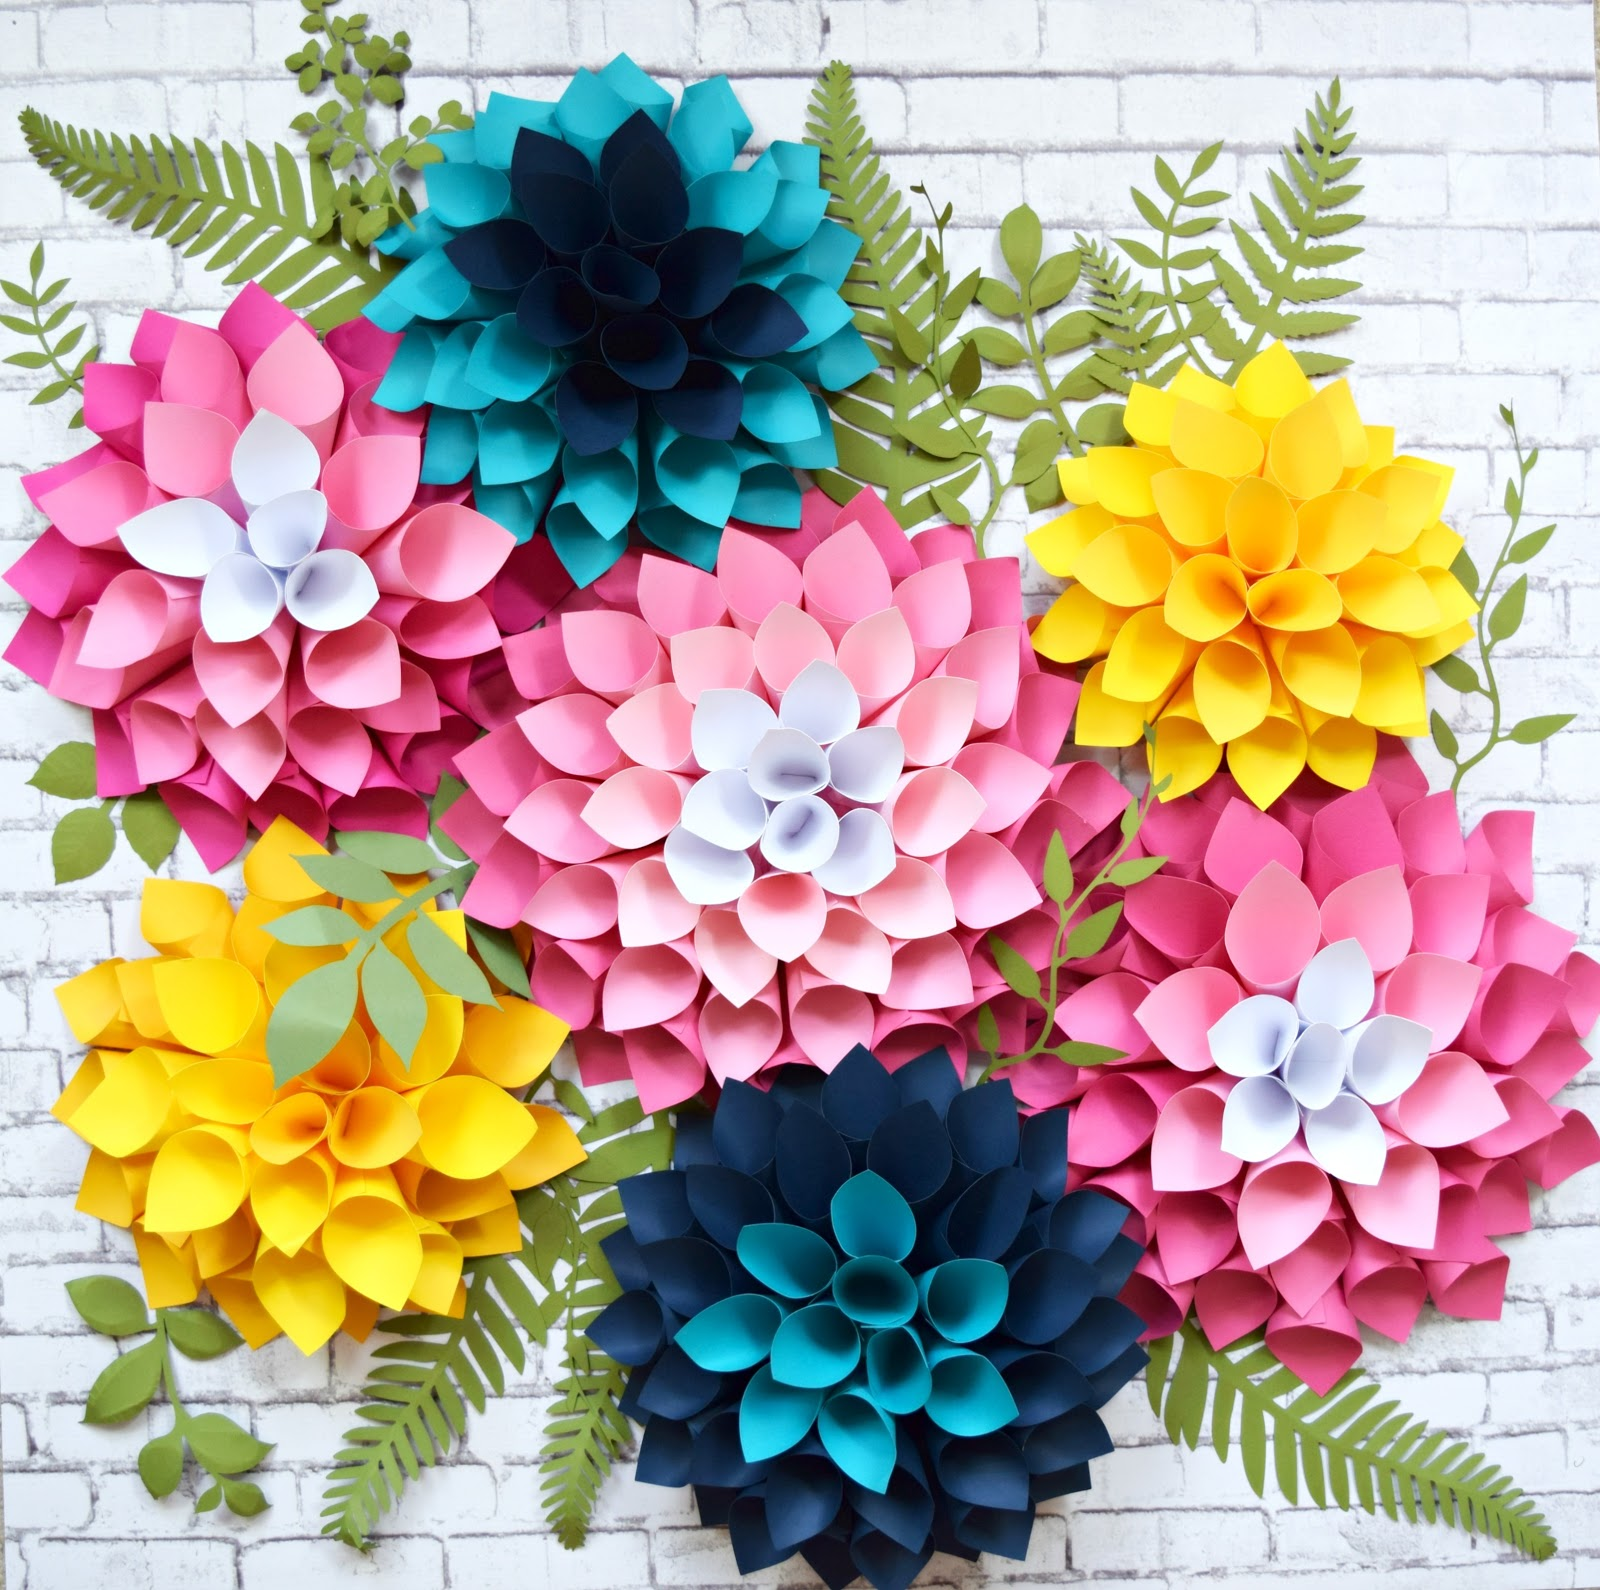 DIY Giant Dahlia Paper Flowers: How to Make Large Paper